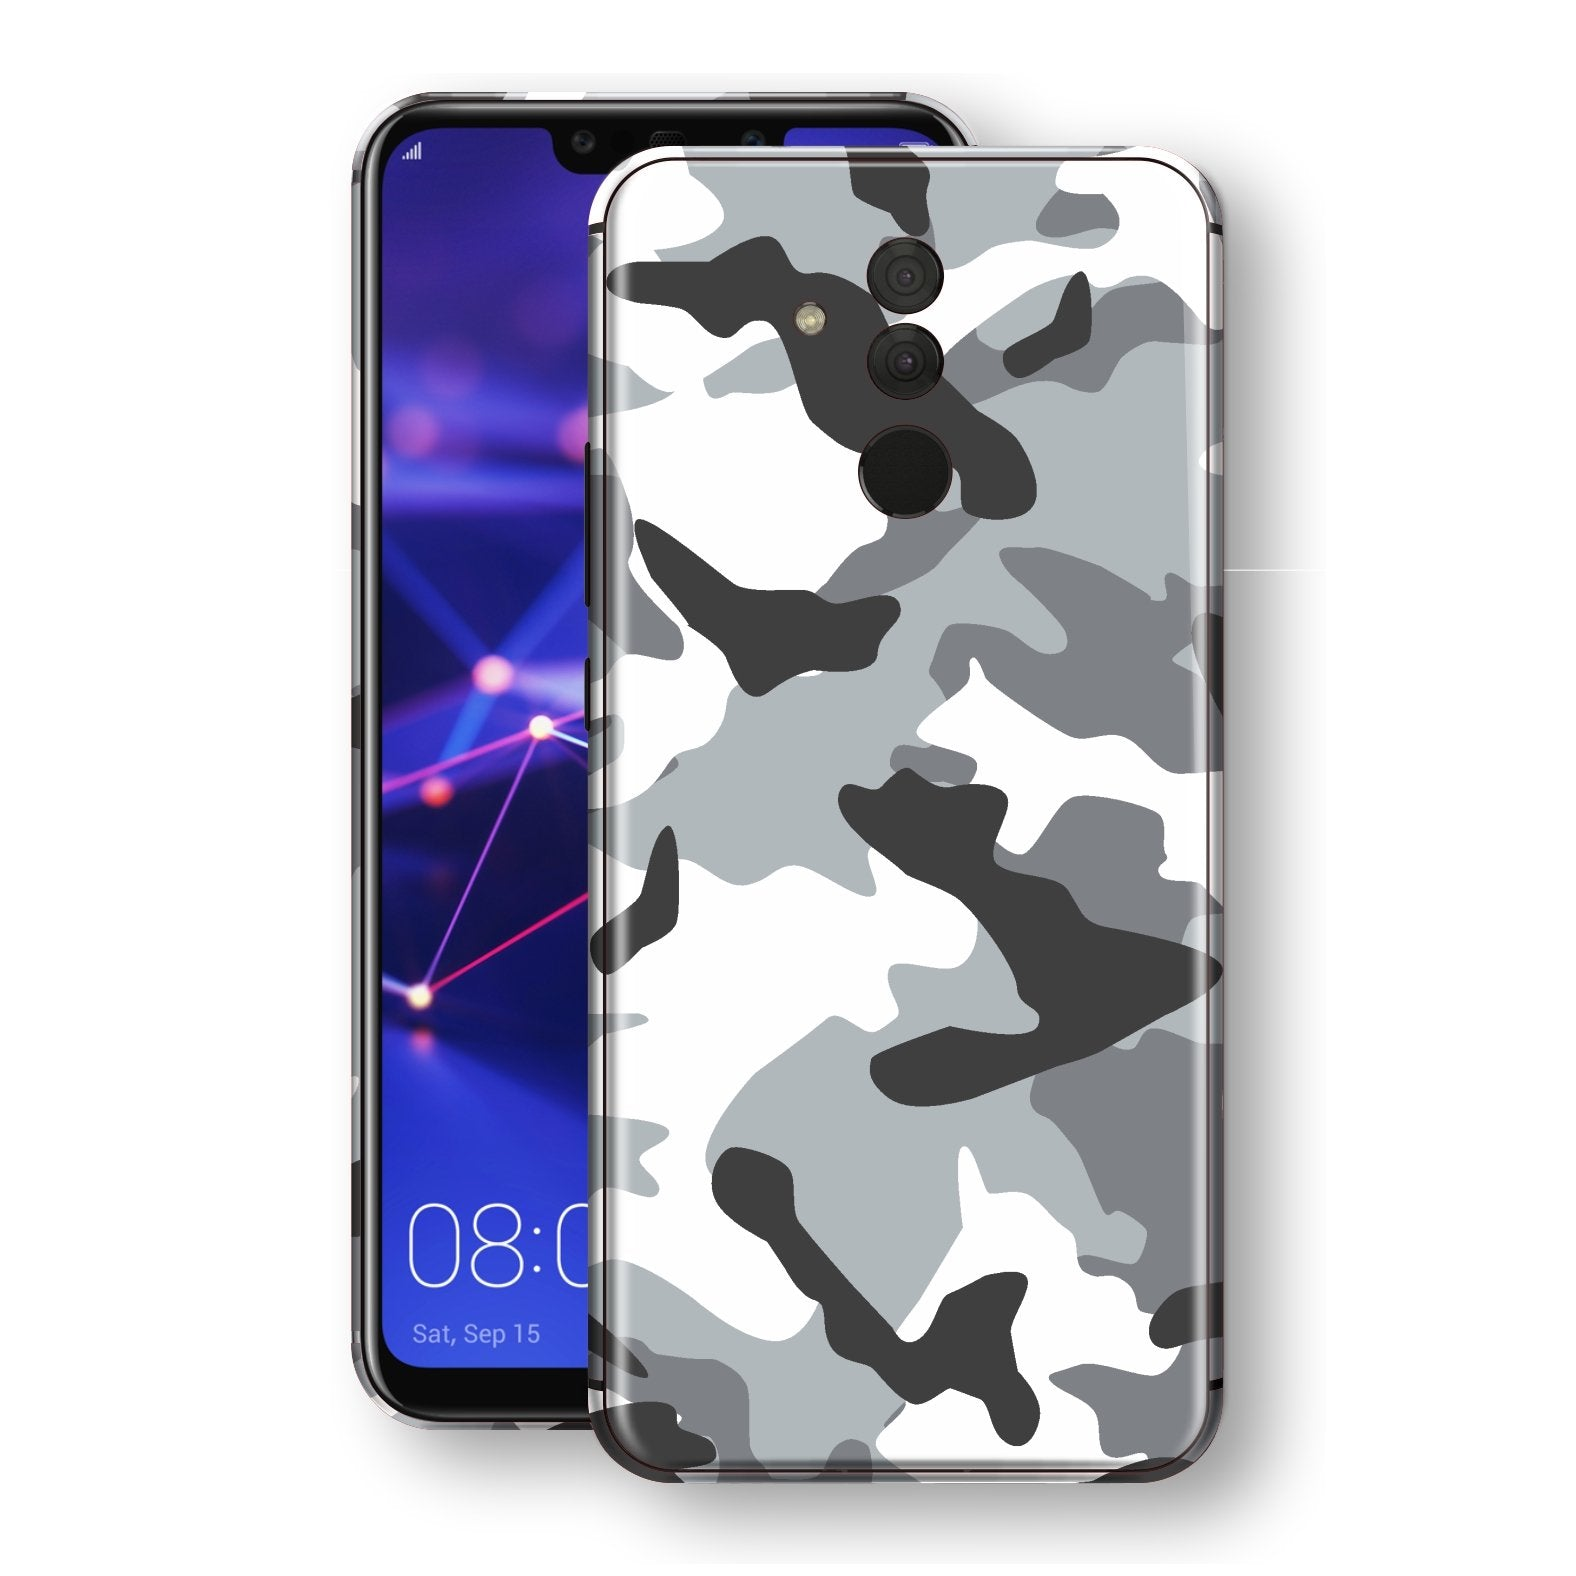 Huawei MATE 20 LITE Print Custom Signature Grey Camouflage Camo Skin Wrap Decal by EasySkinz